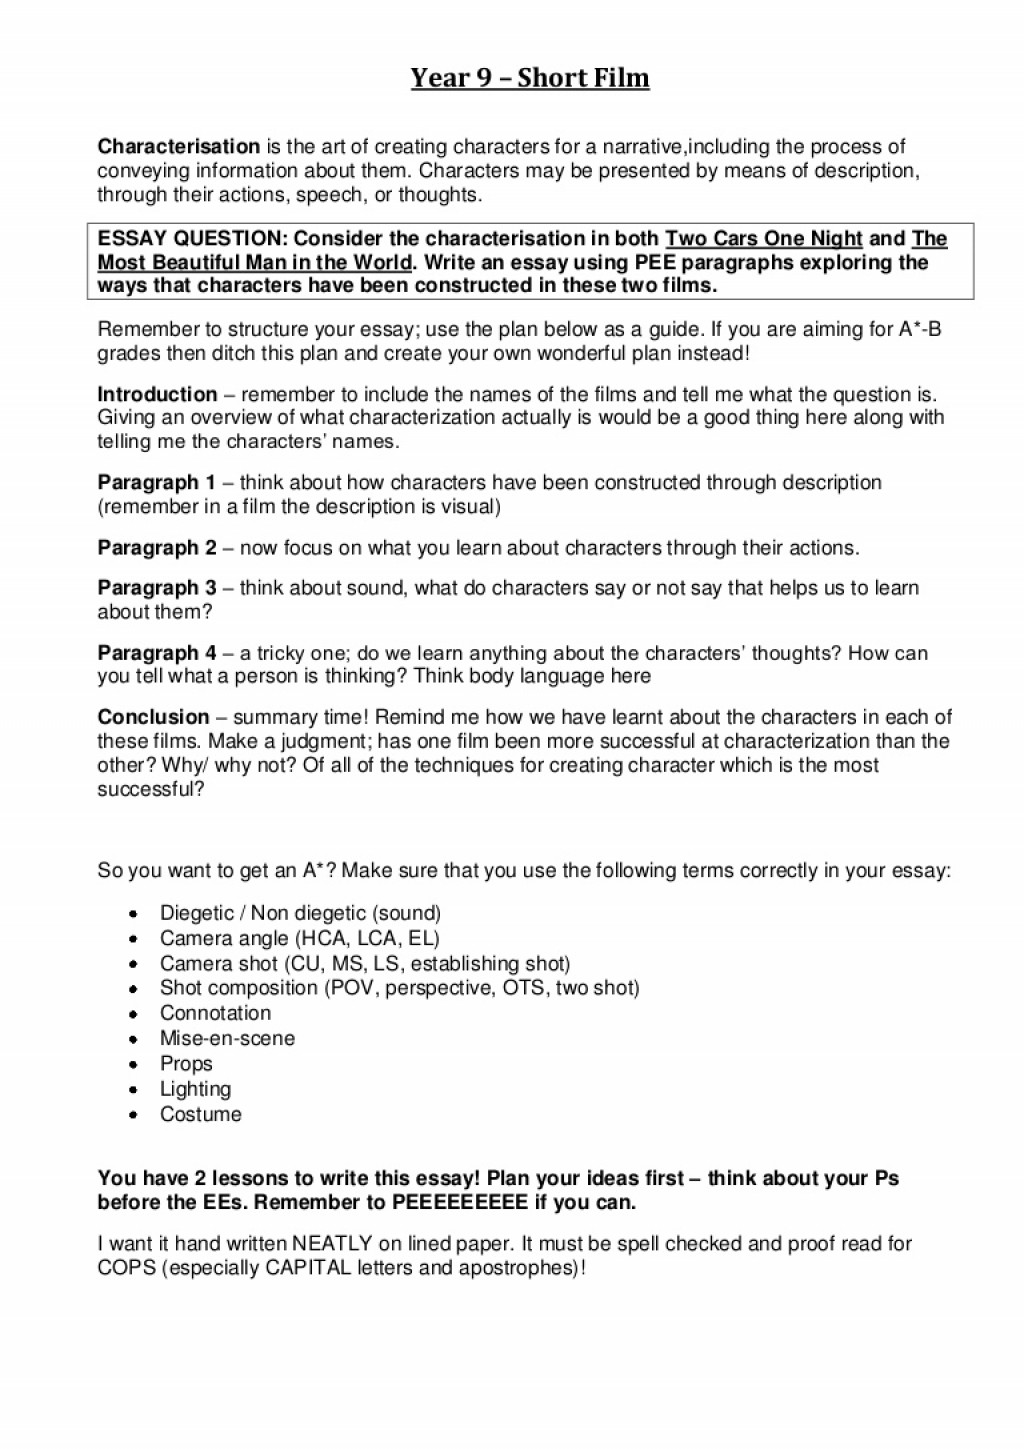 003 Year9shortfilmcharacterisationessay Phpapp02 Thumbnail How To Write An Essay On Characterization Astounding A Paper Research Large